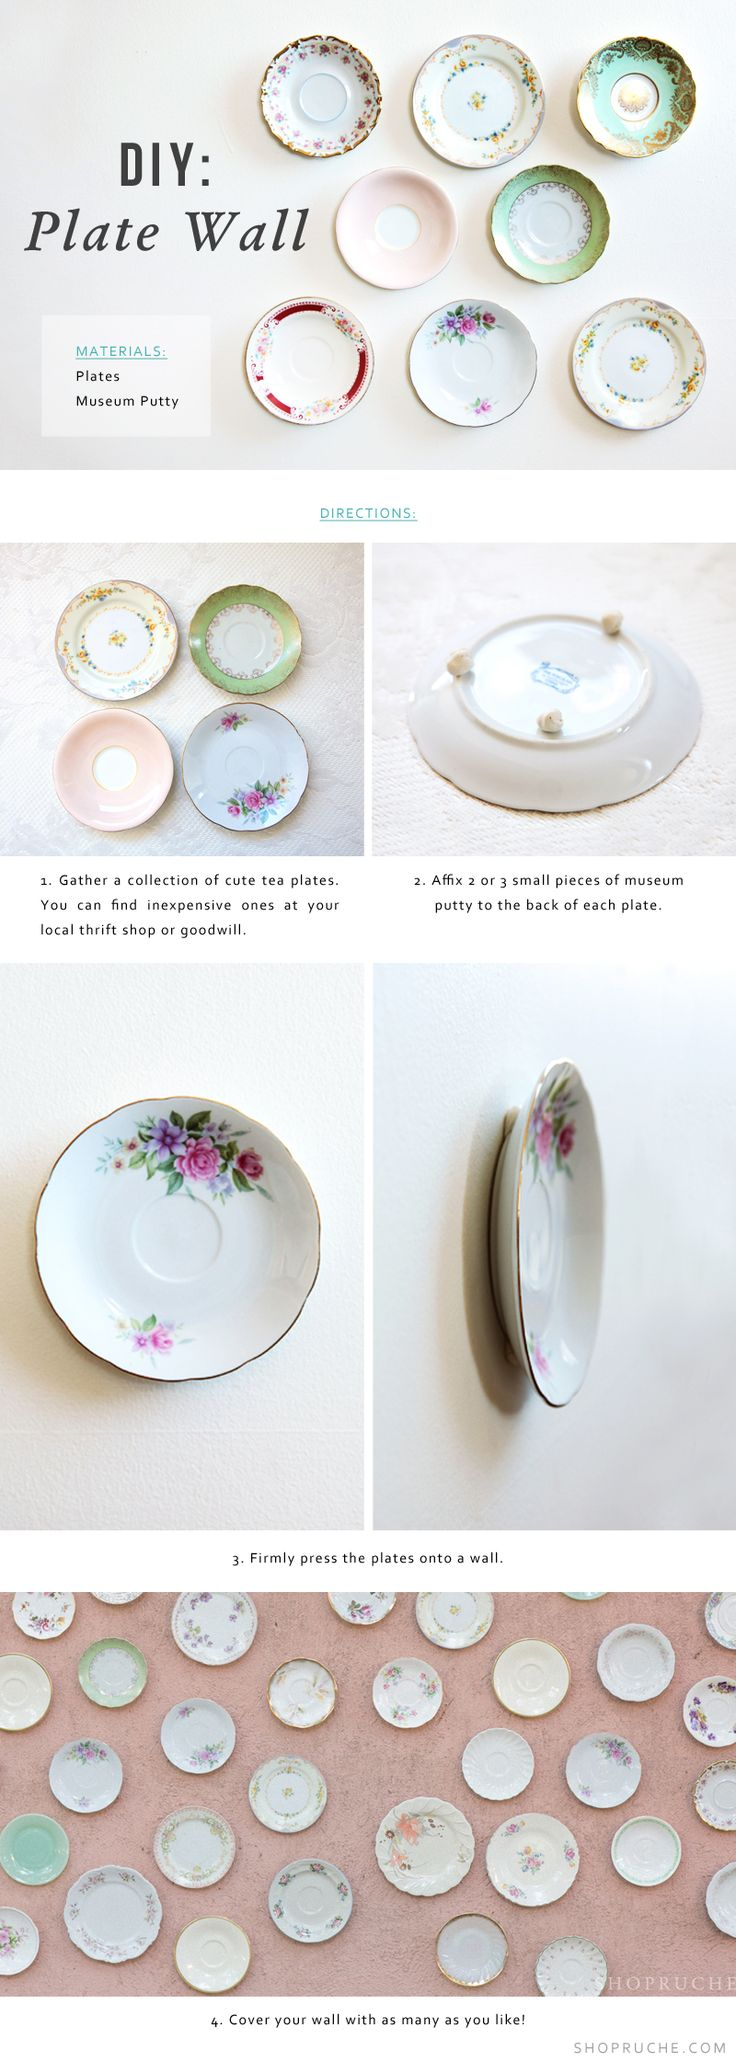 For a vintage-inspired style, we love the idea of displaying vintage plates on the wall.